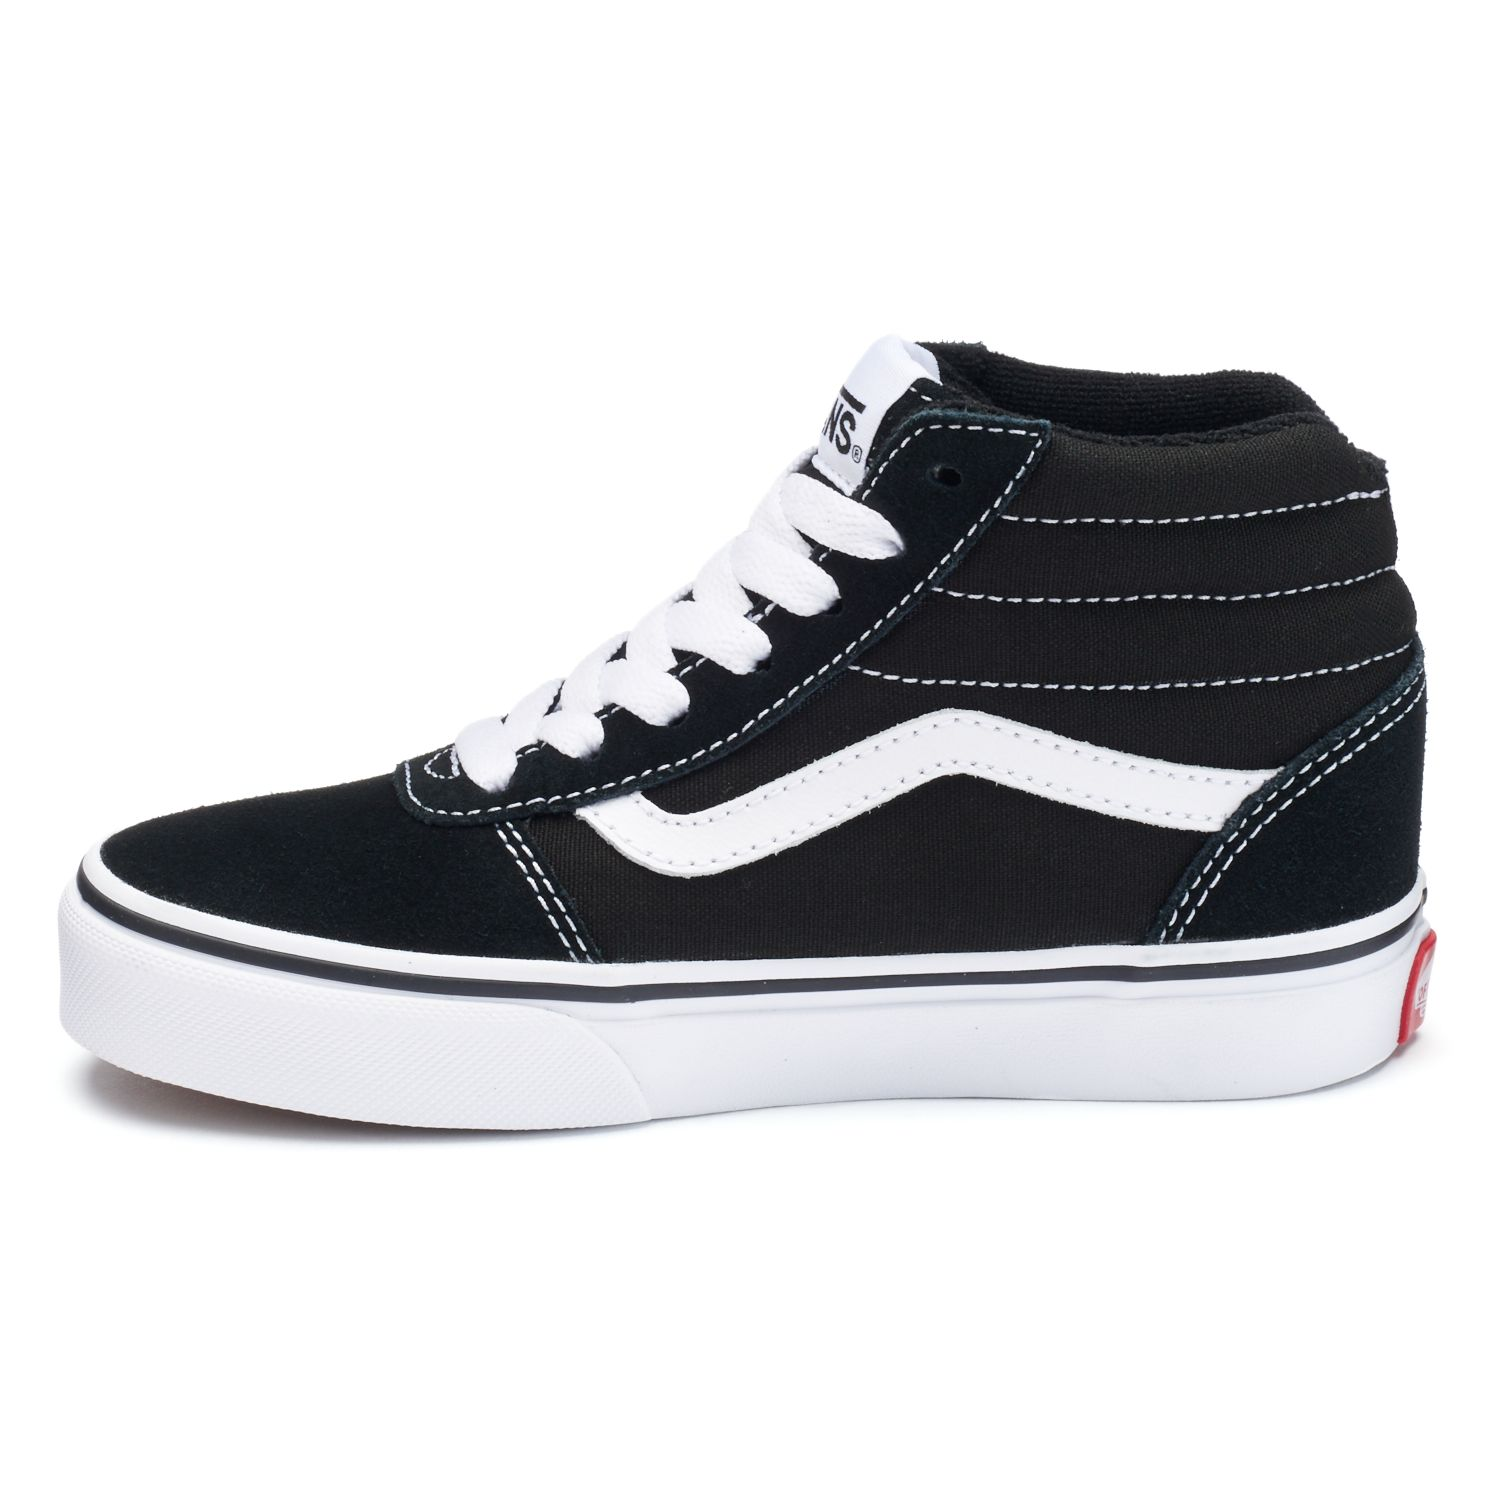 1d53a63fc8a684 Sale Vans Shoes